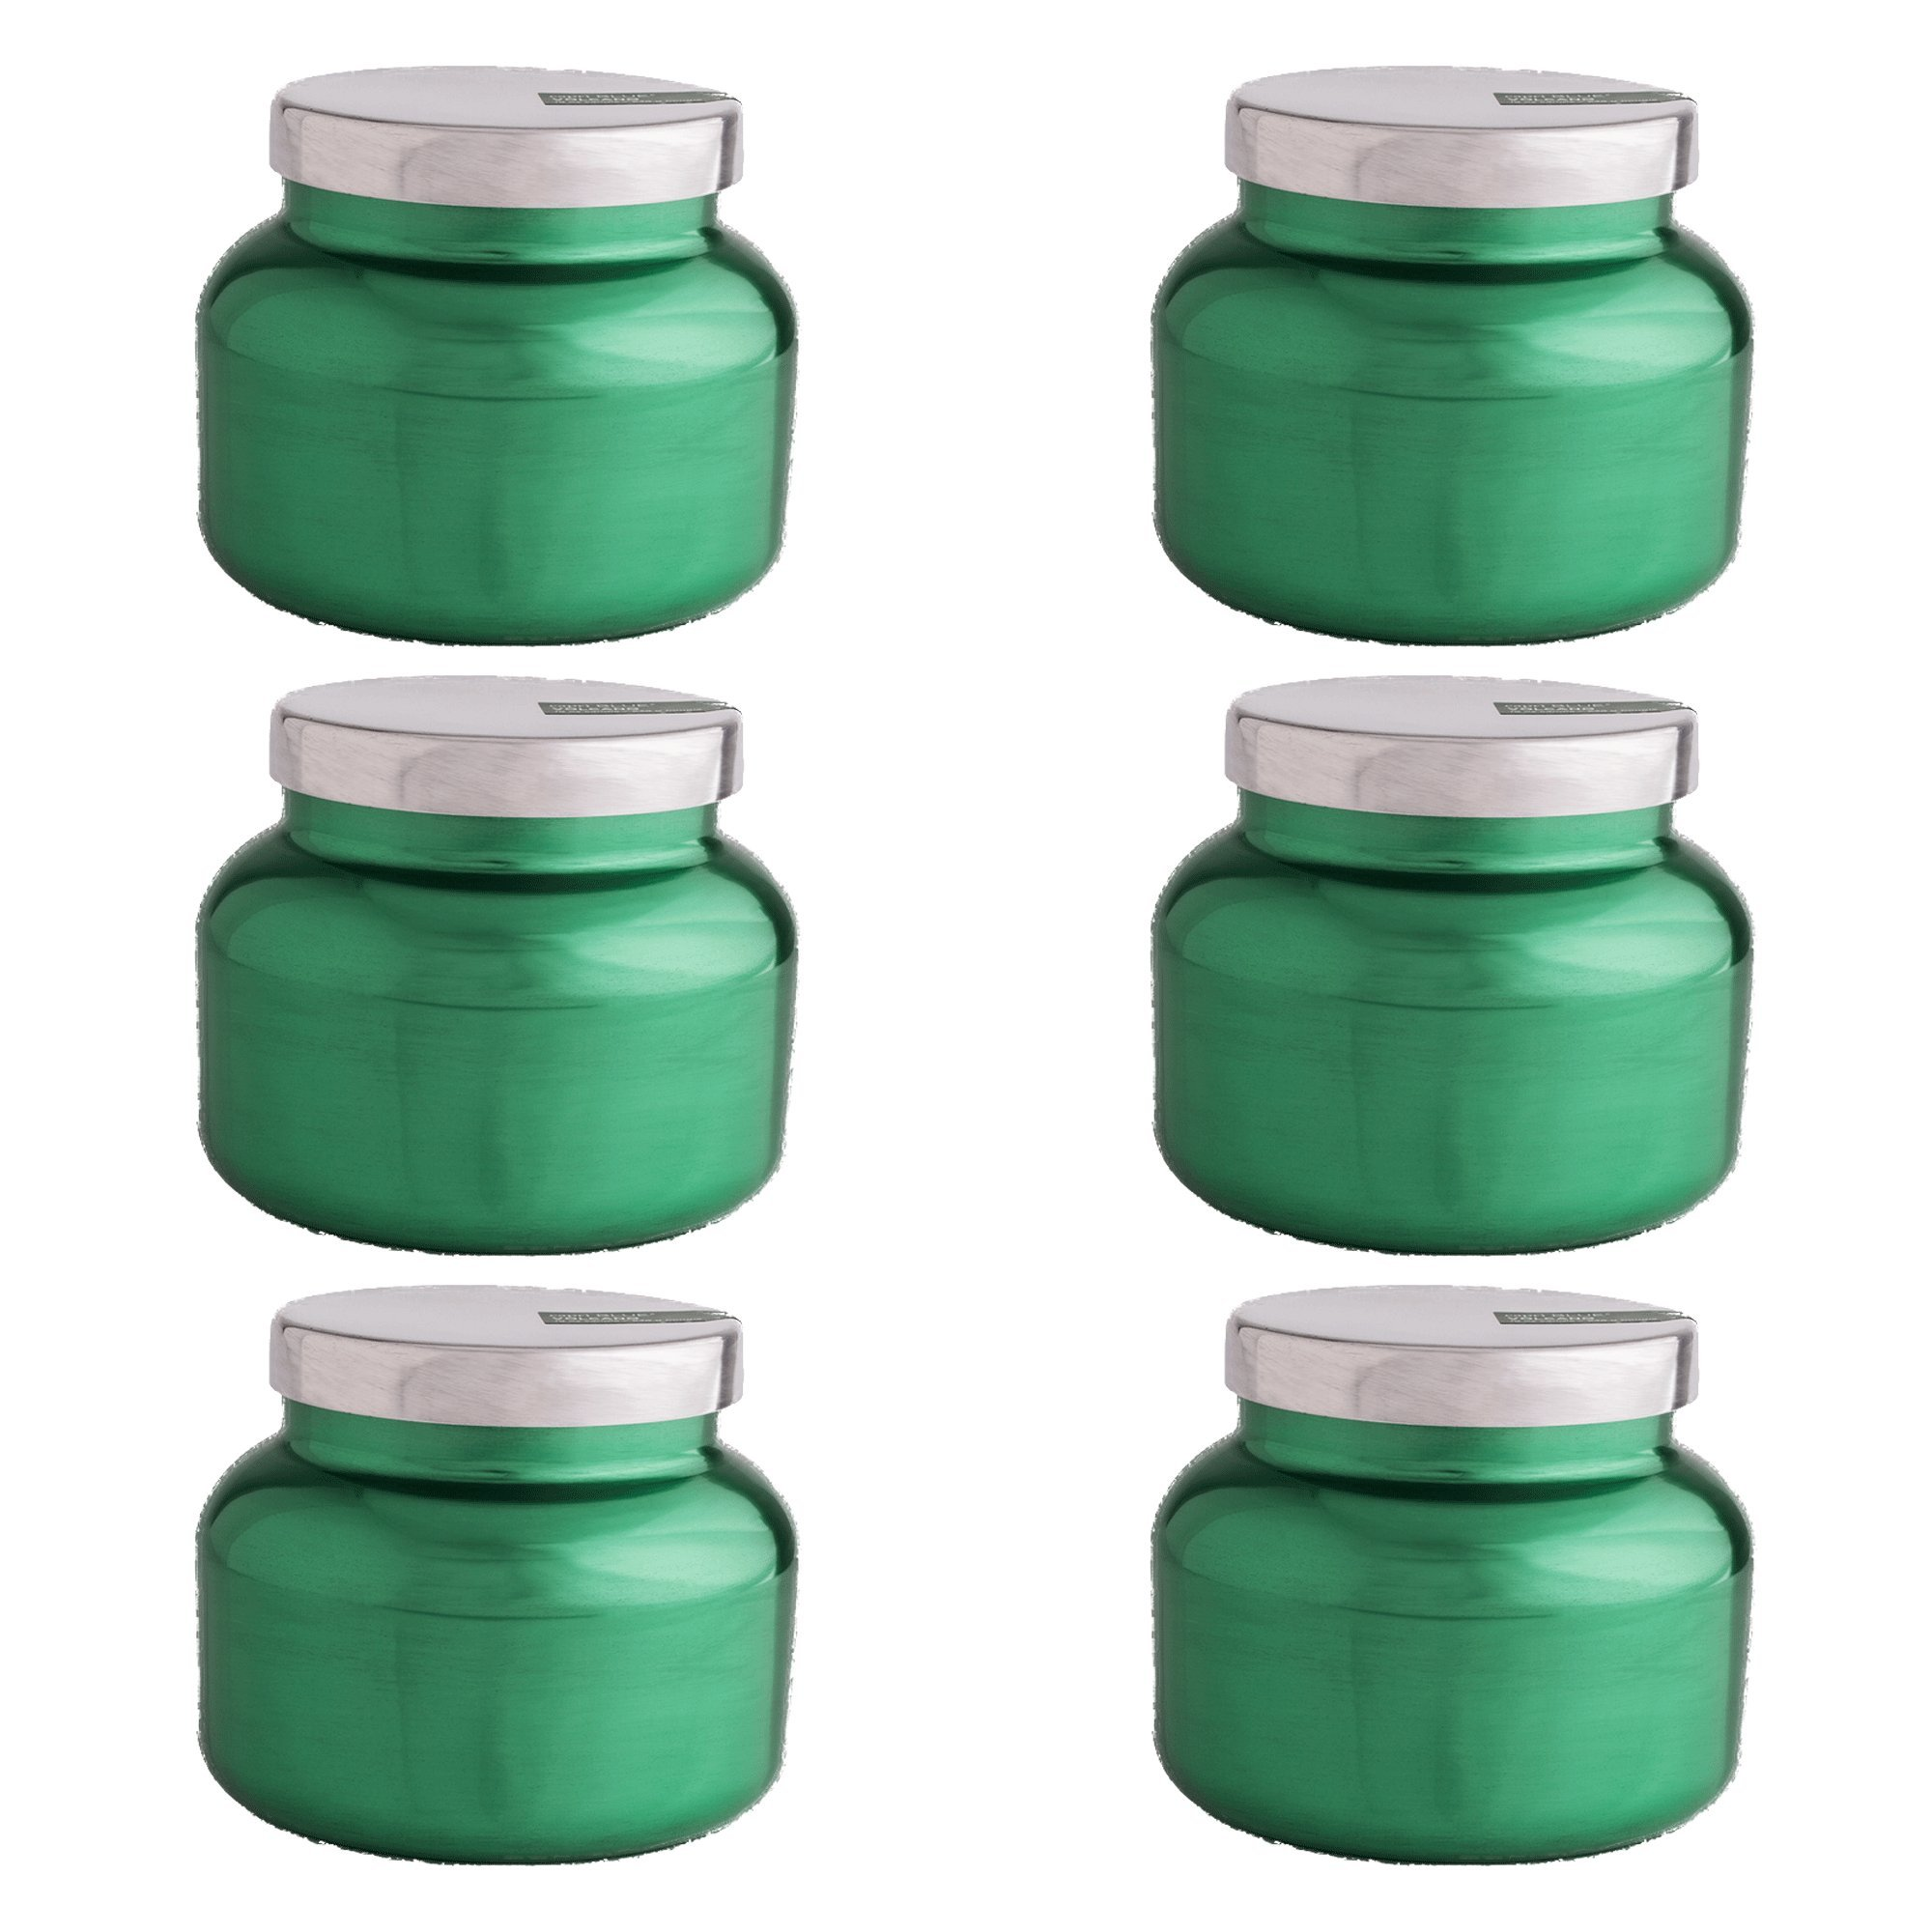 Capri Blue Women's 8 oz Volcano Metallic Holiday Jar Candle (6 pack), Assorted, One Size by Capri Blue